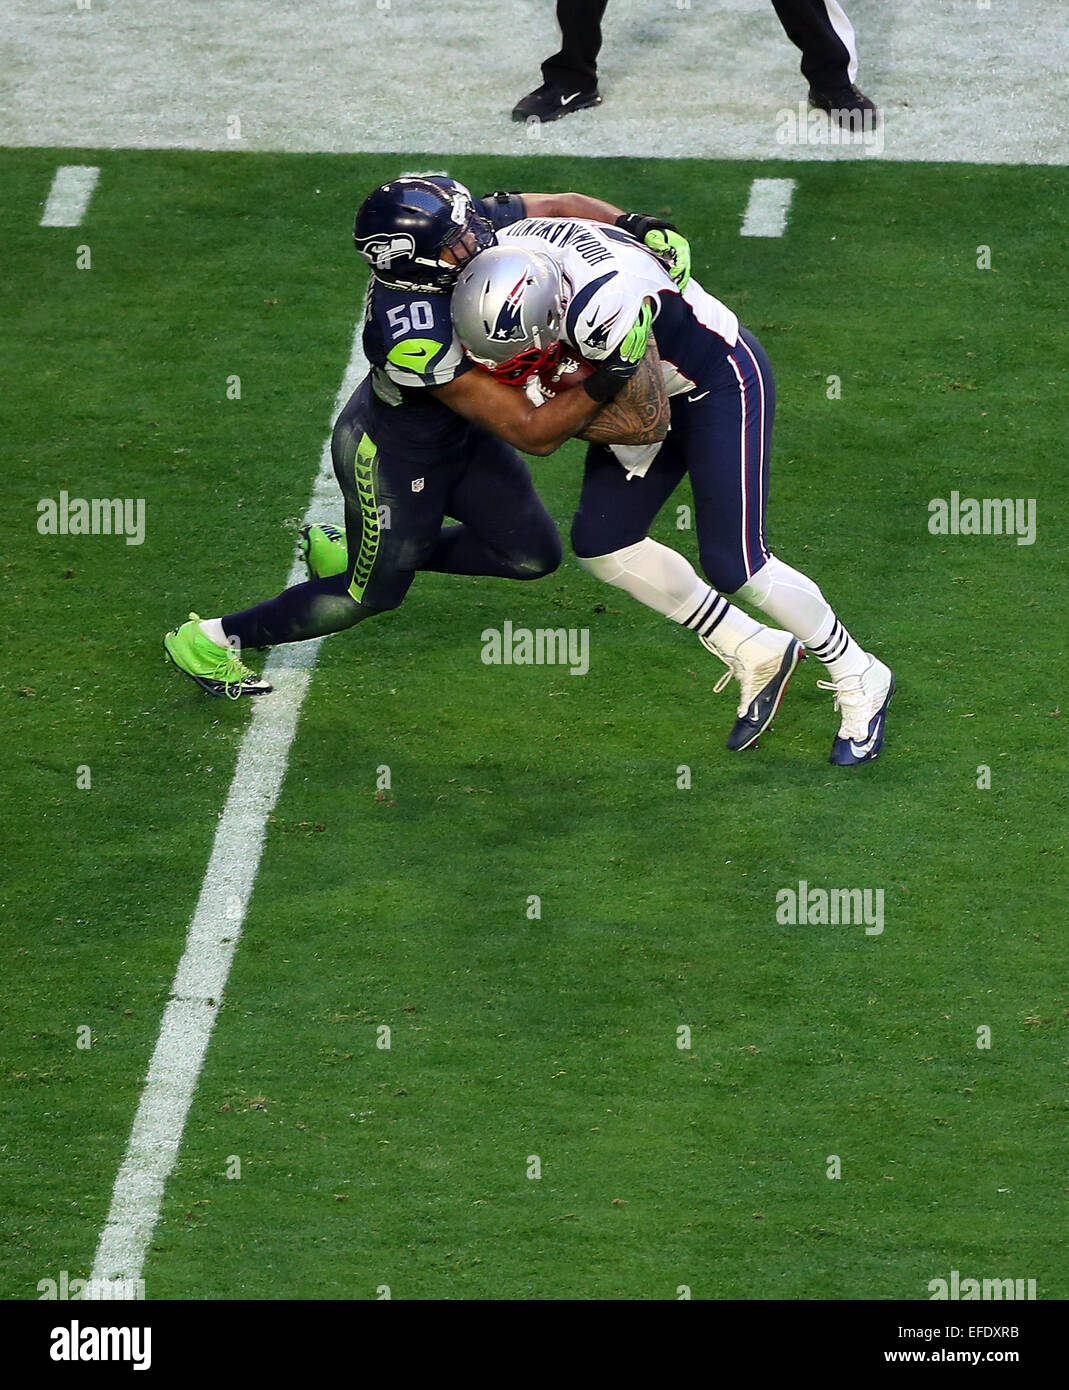 Glendale, Arizona, USA. 01st Feb, 2015. New England Patriots tight end Michael Hoomanawanui #47 is hit by Seattle - Stock Image